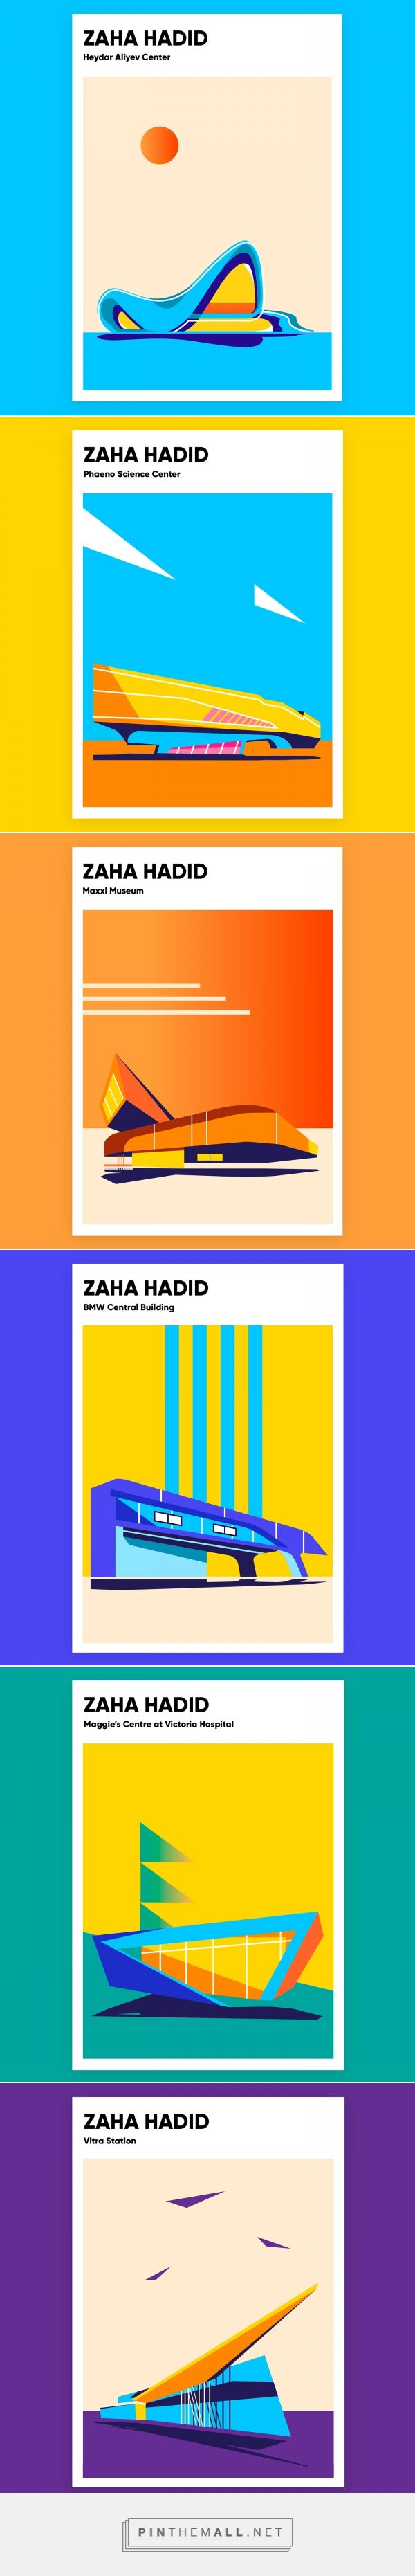 Series of posters about Zaha Hadid buildings on Behance... - a grouped images picture - Pin Them All